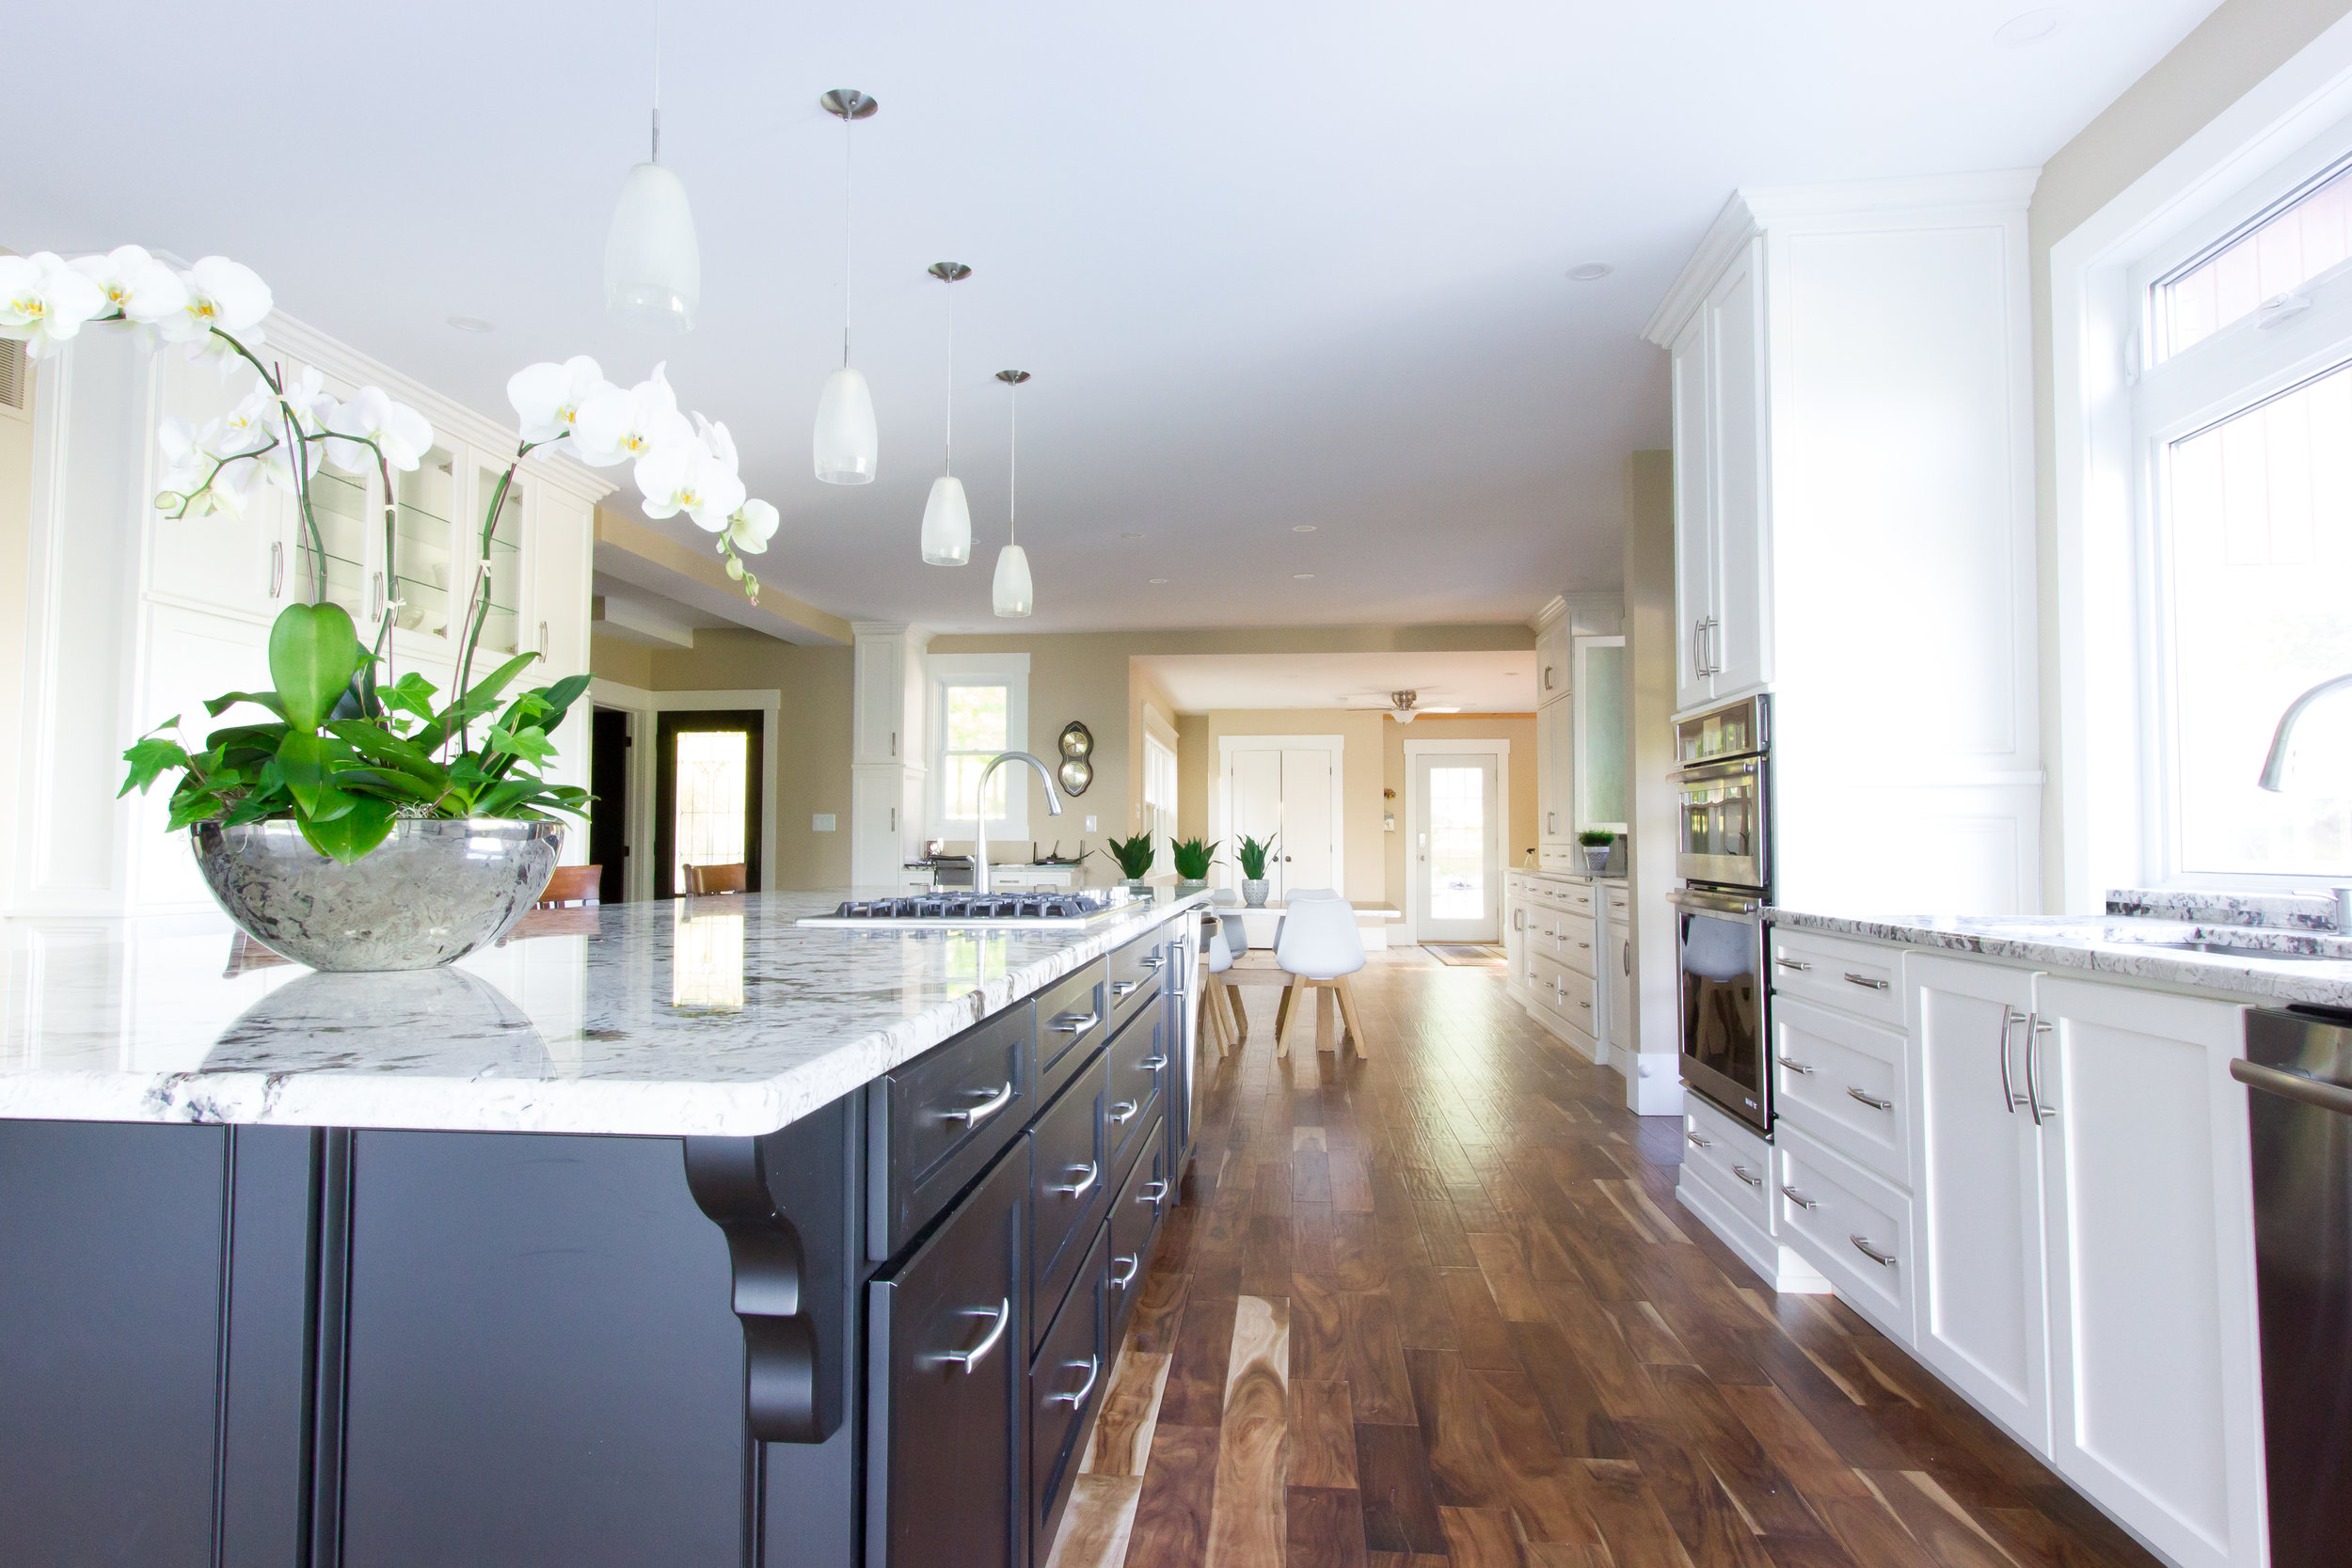 A Barrie home kitchen staged and decorated by New Leaf Decor